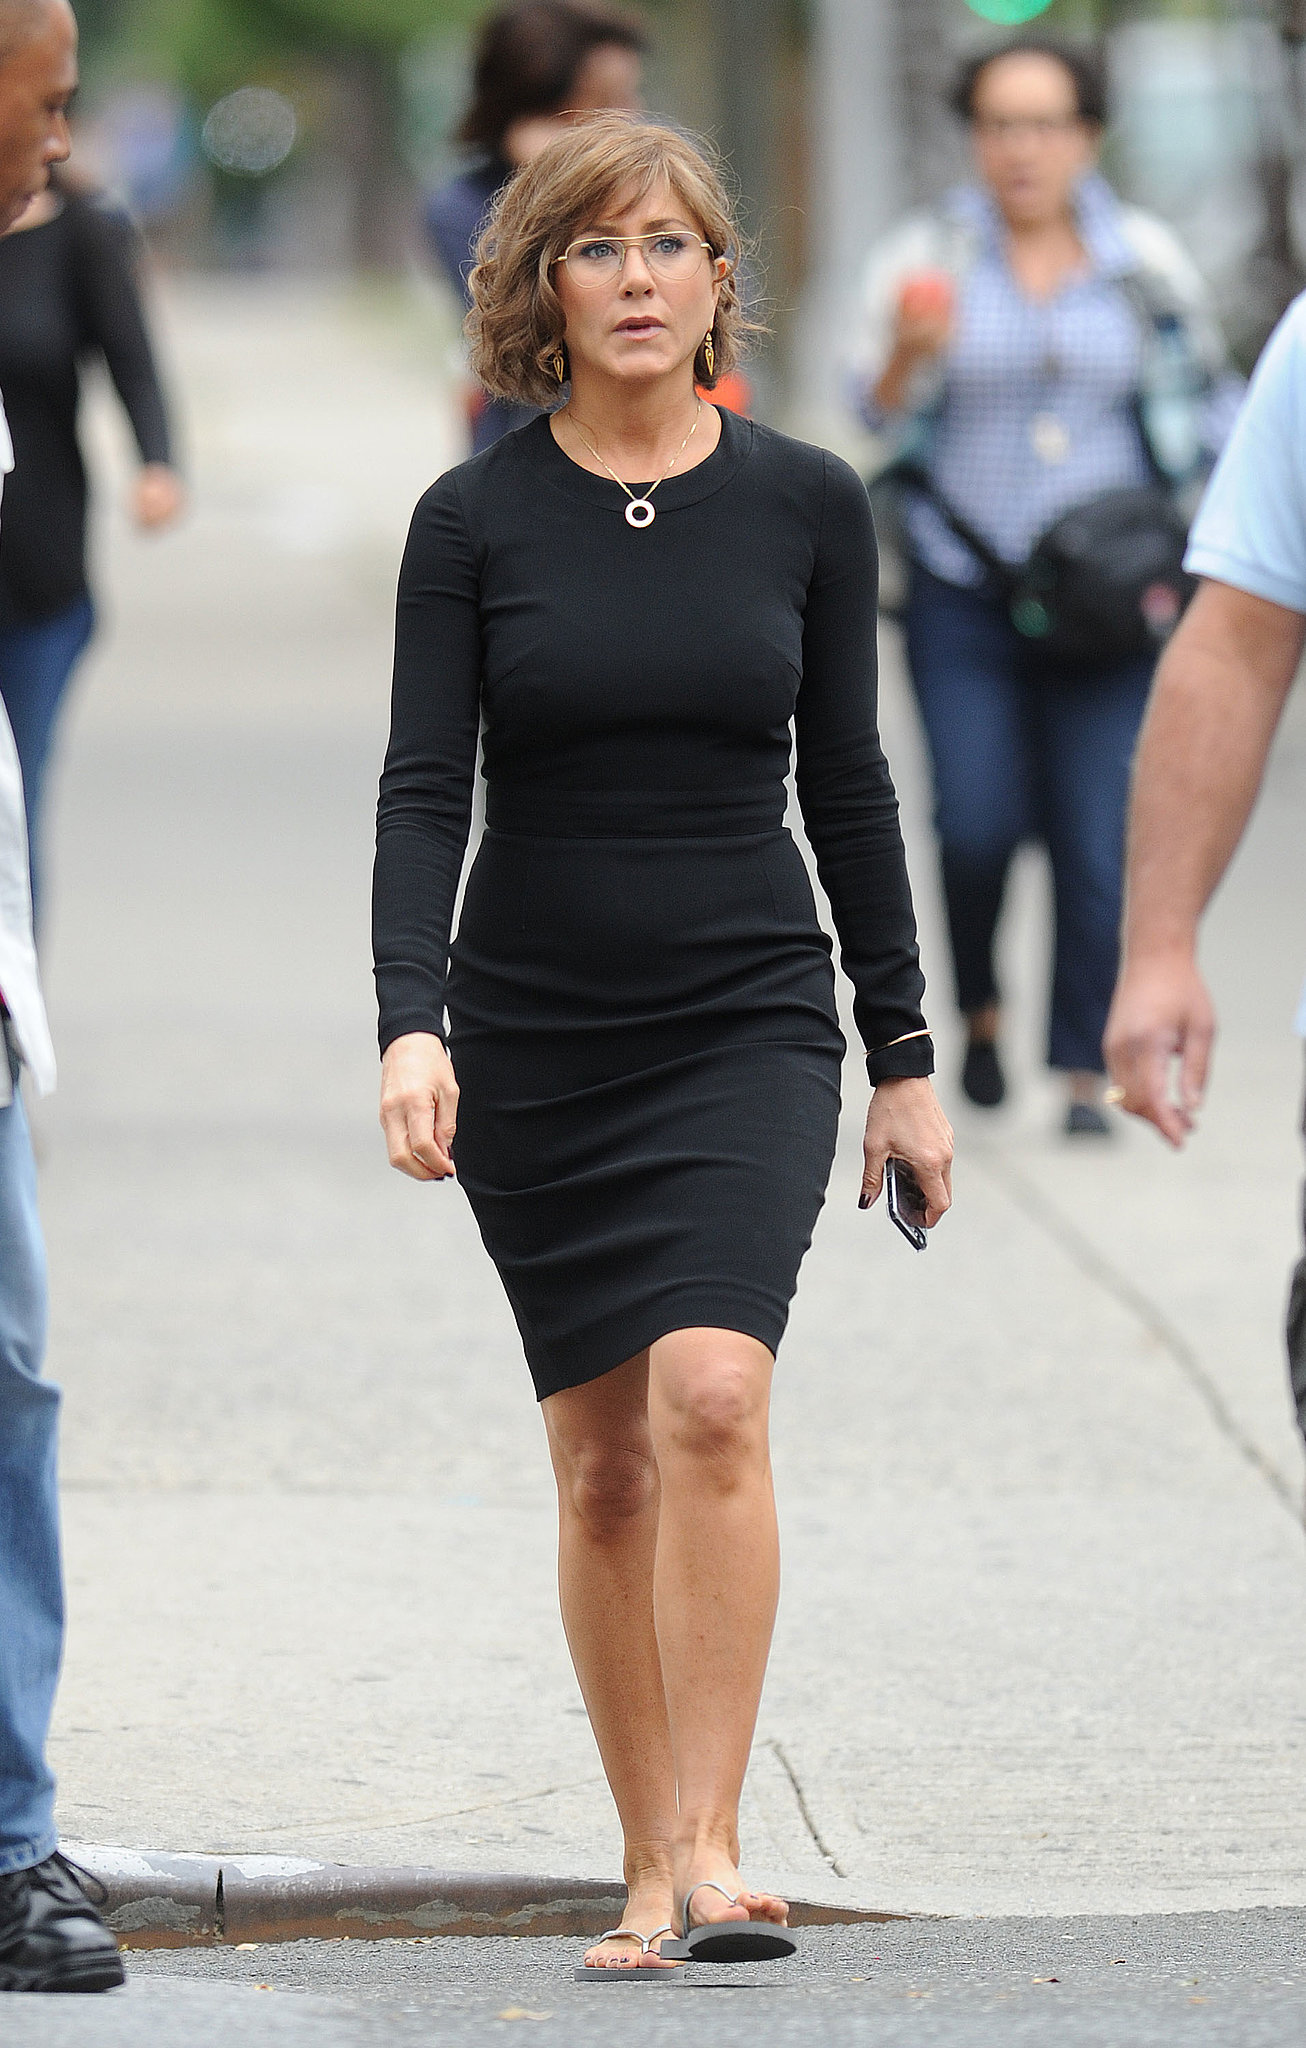 Jennifer Aniston wore her glasses on set on July 25.